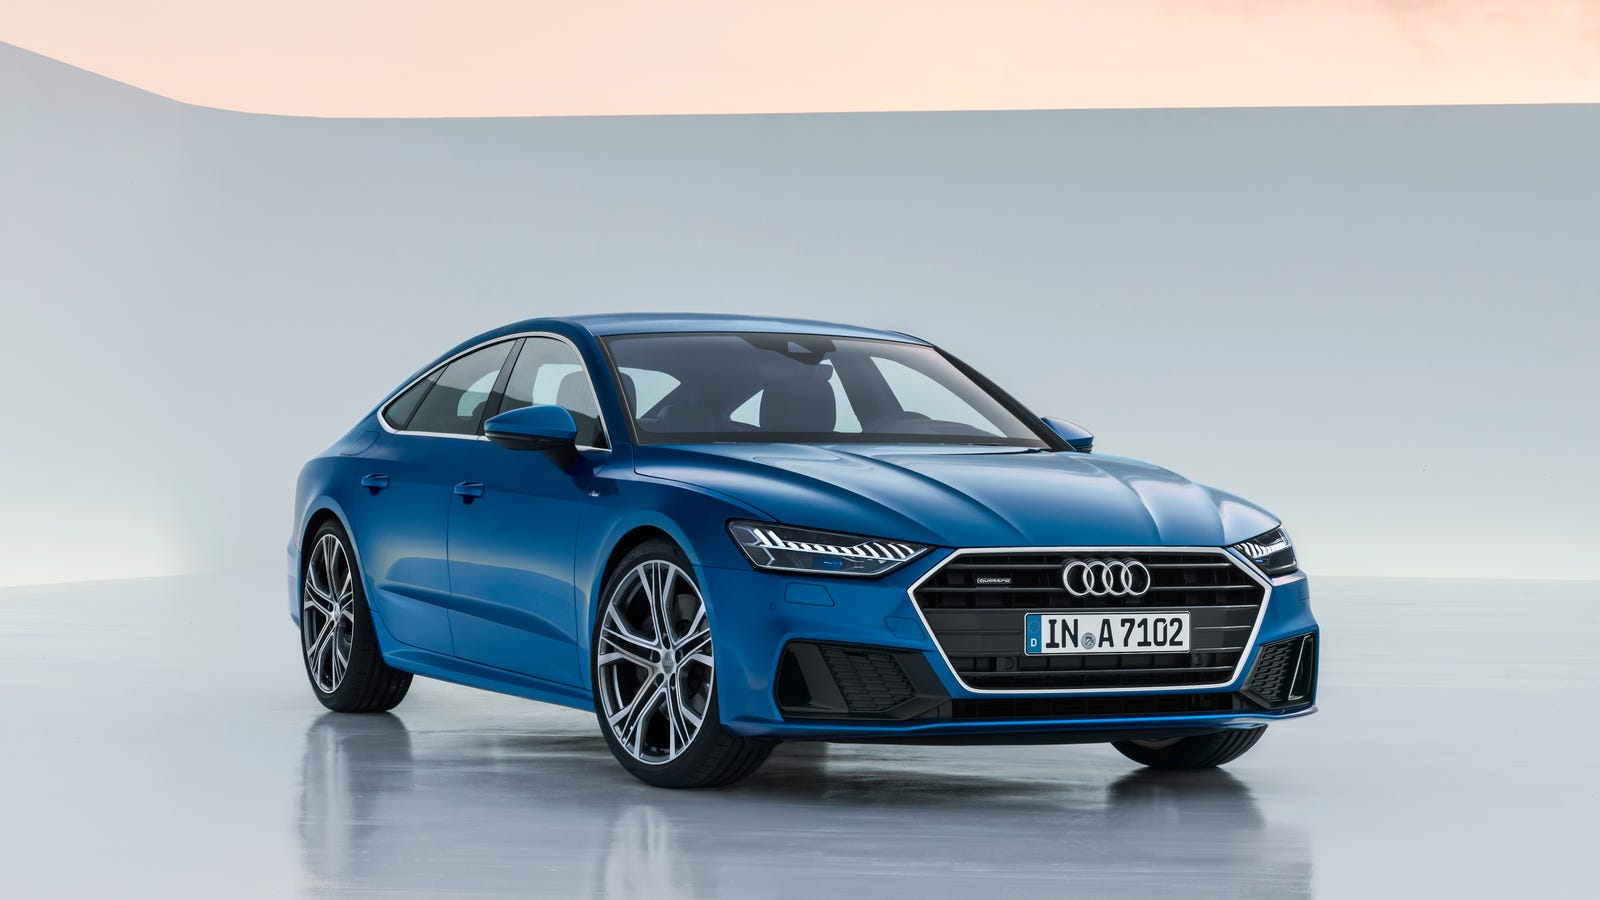 The 2019 Audi A7 Sportback Looks Good And Goes More High ...